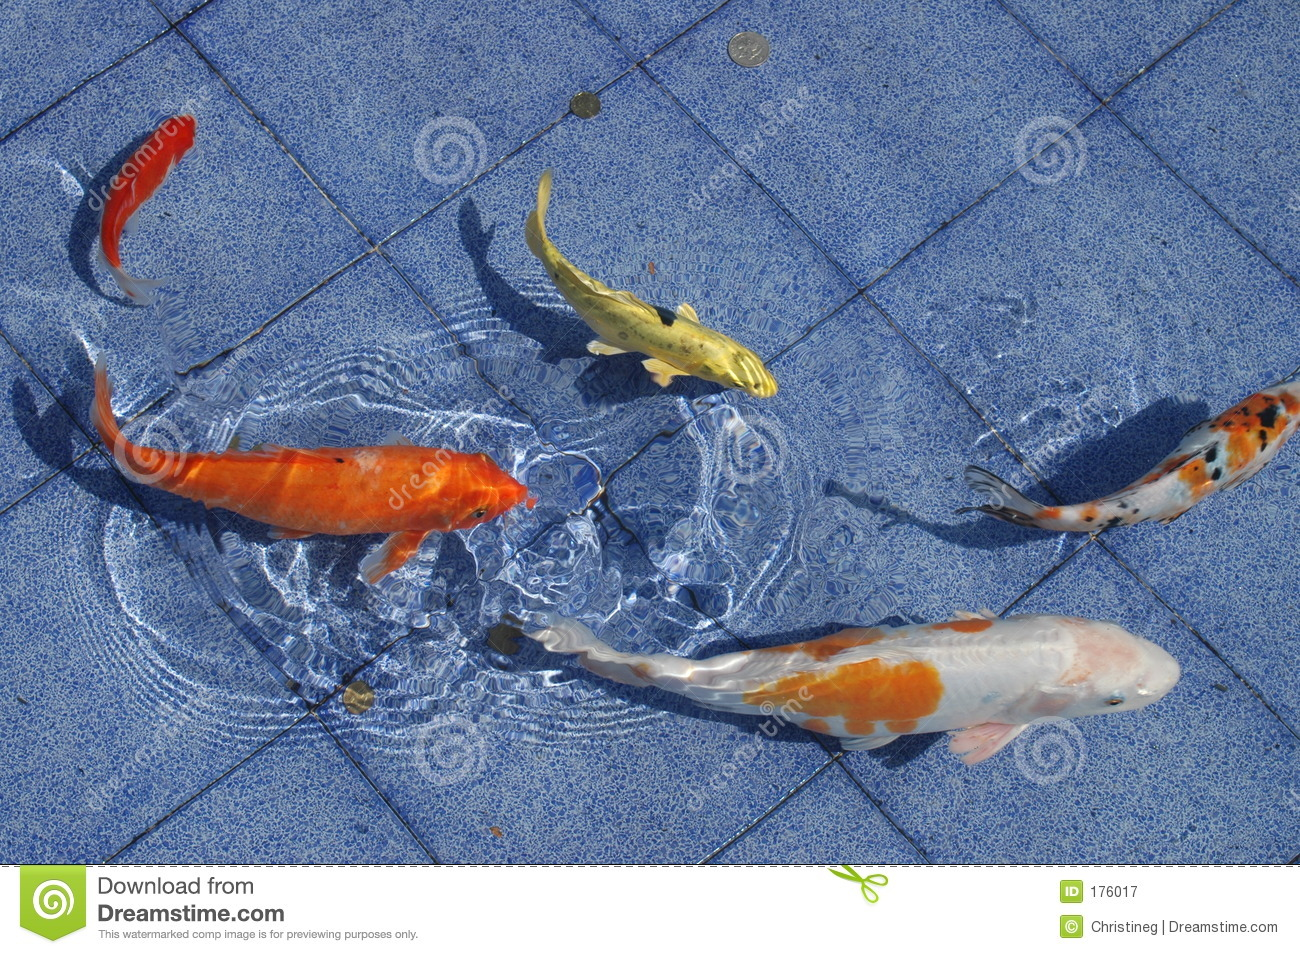 Koi fish in a blue pool stock image image of pets marine for Koi fish in pool